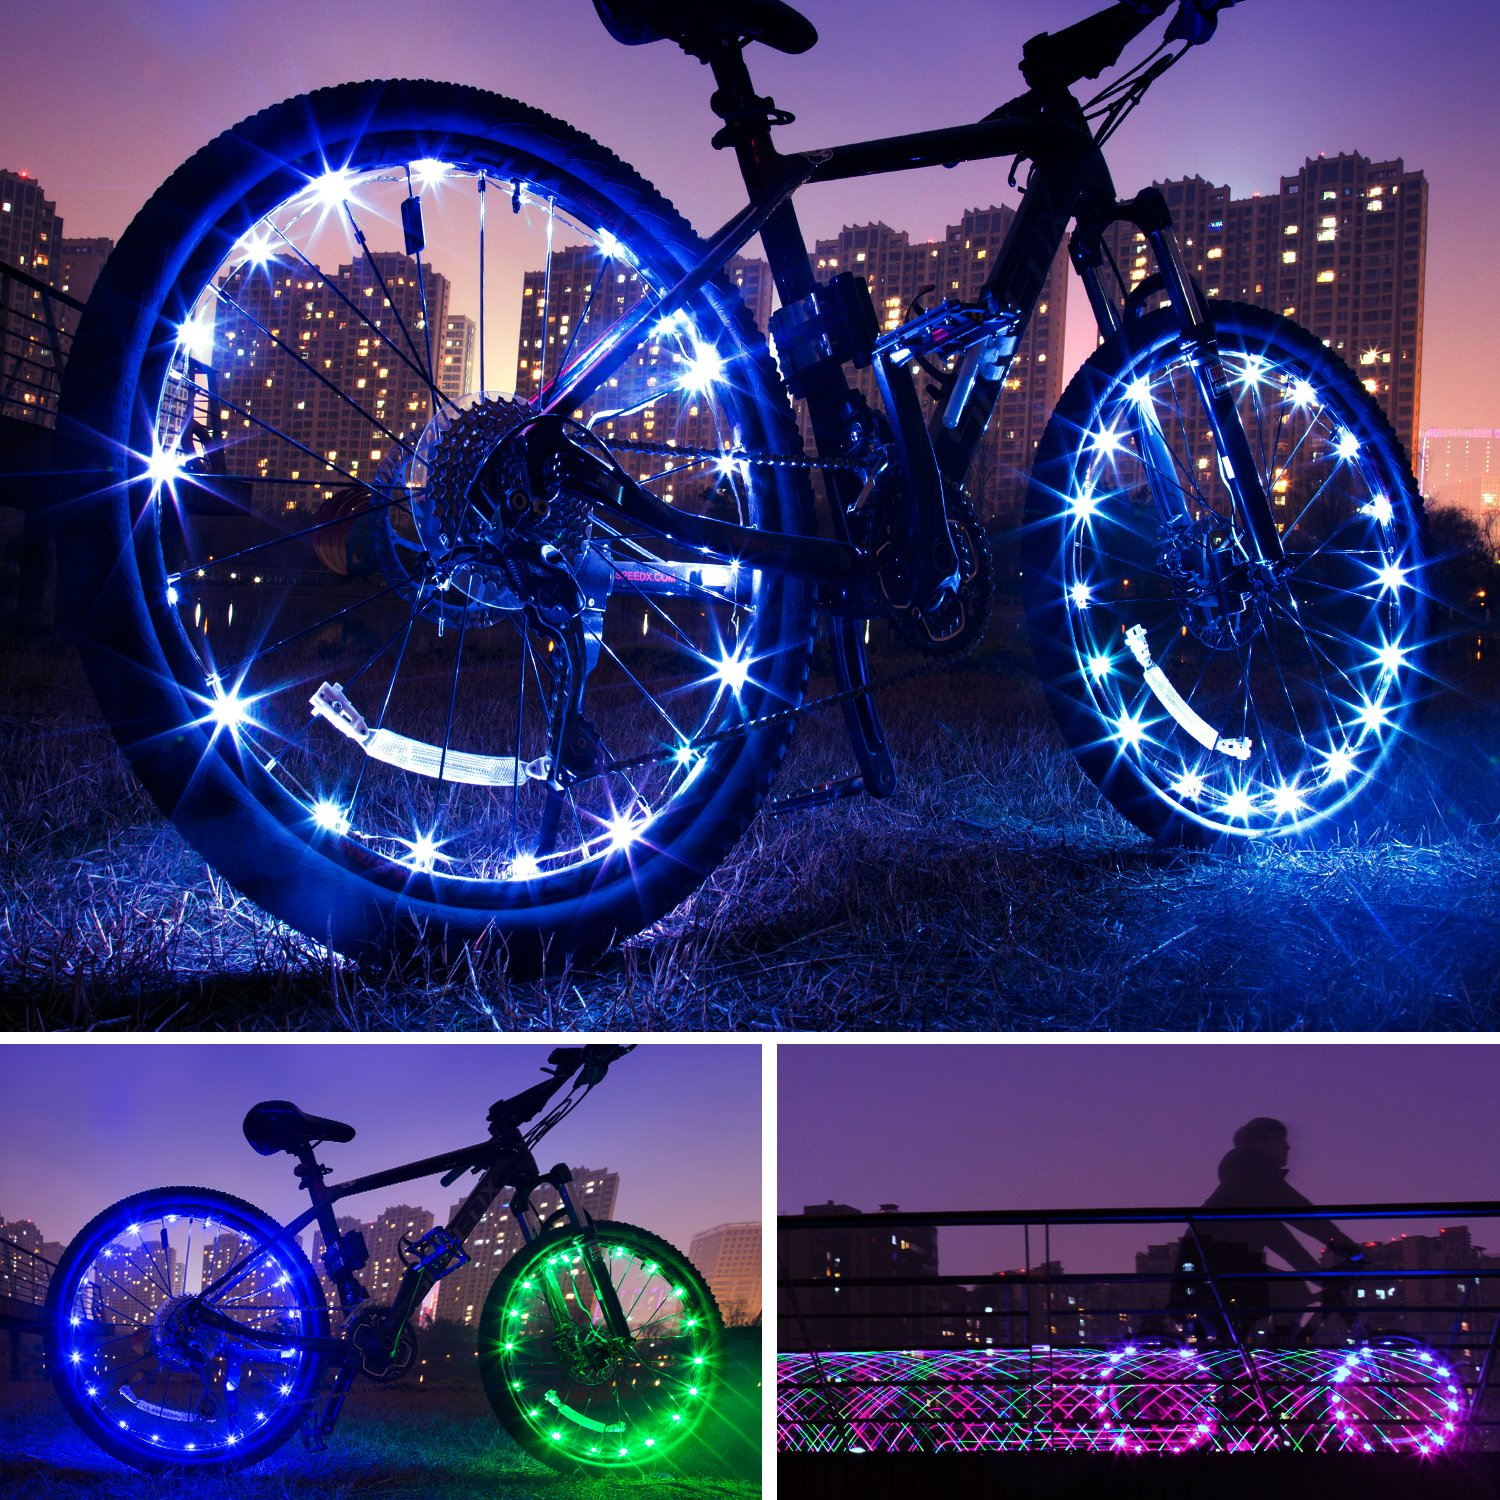 Exwell Bike Wheel Lights, 7 Colors in 1 Bike lights,Safety at Night,Switch 9 Modes LED Bike Accessories Lights, USB rechargeable 1 PACK by Exwell (Image #3)